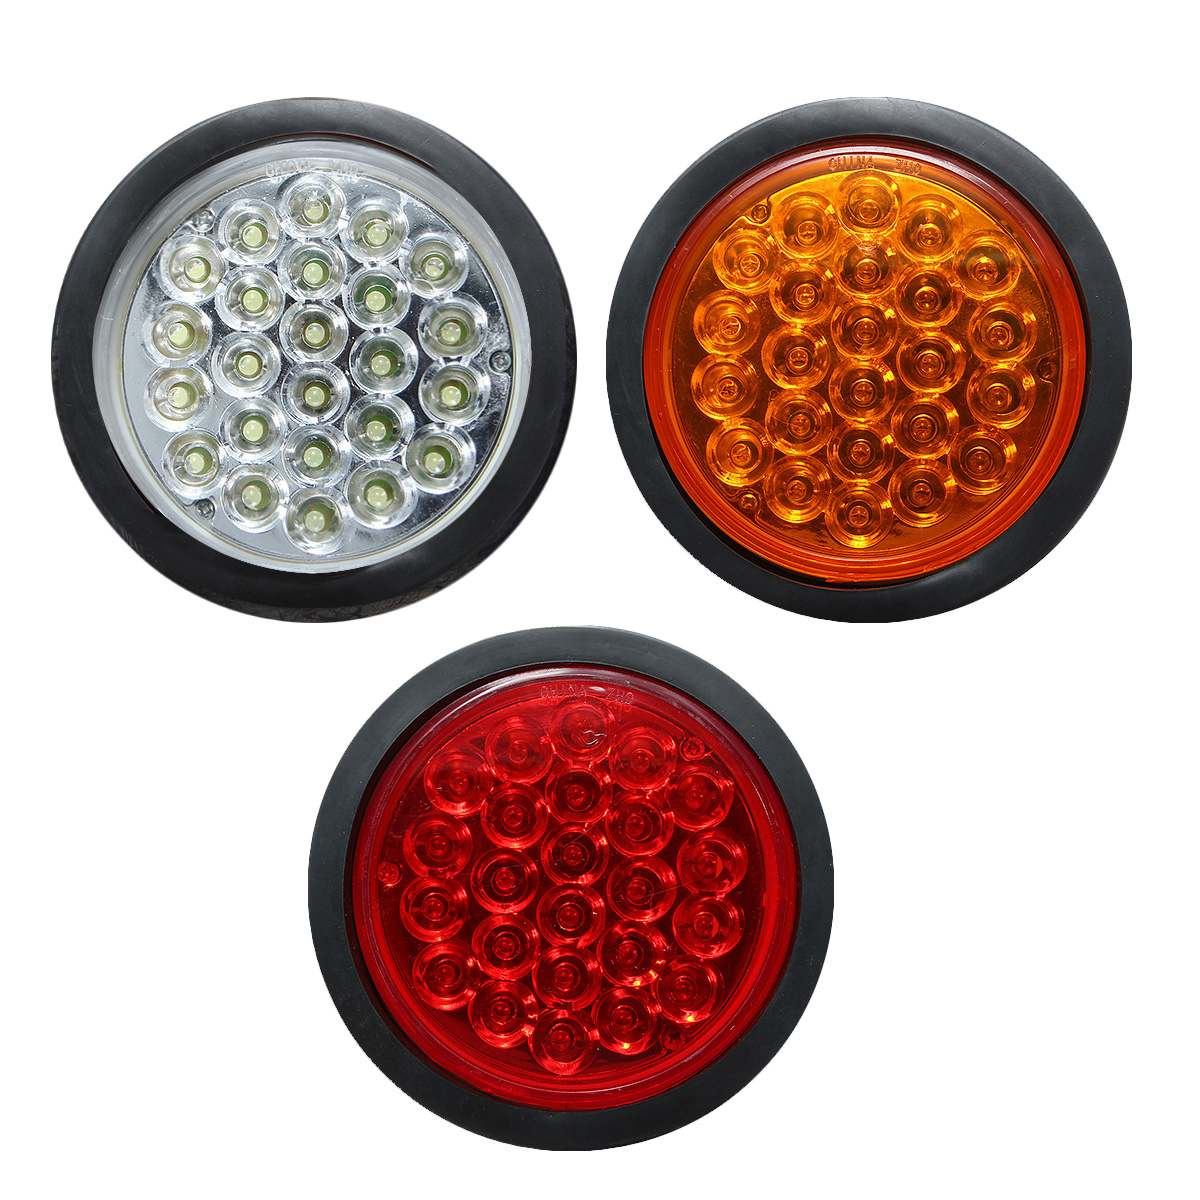 Light-Indicator Reflector Truck-Trailer Rear-Tail-Brake-Stop-Marker LEDS White Yellow title=